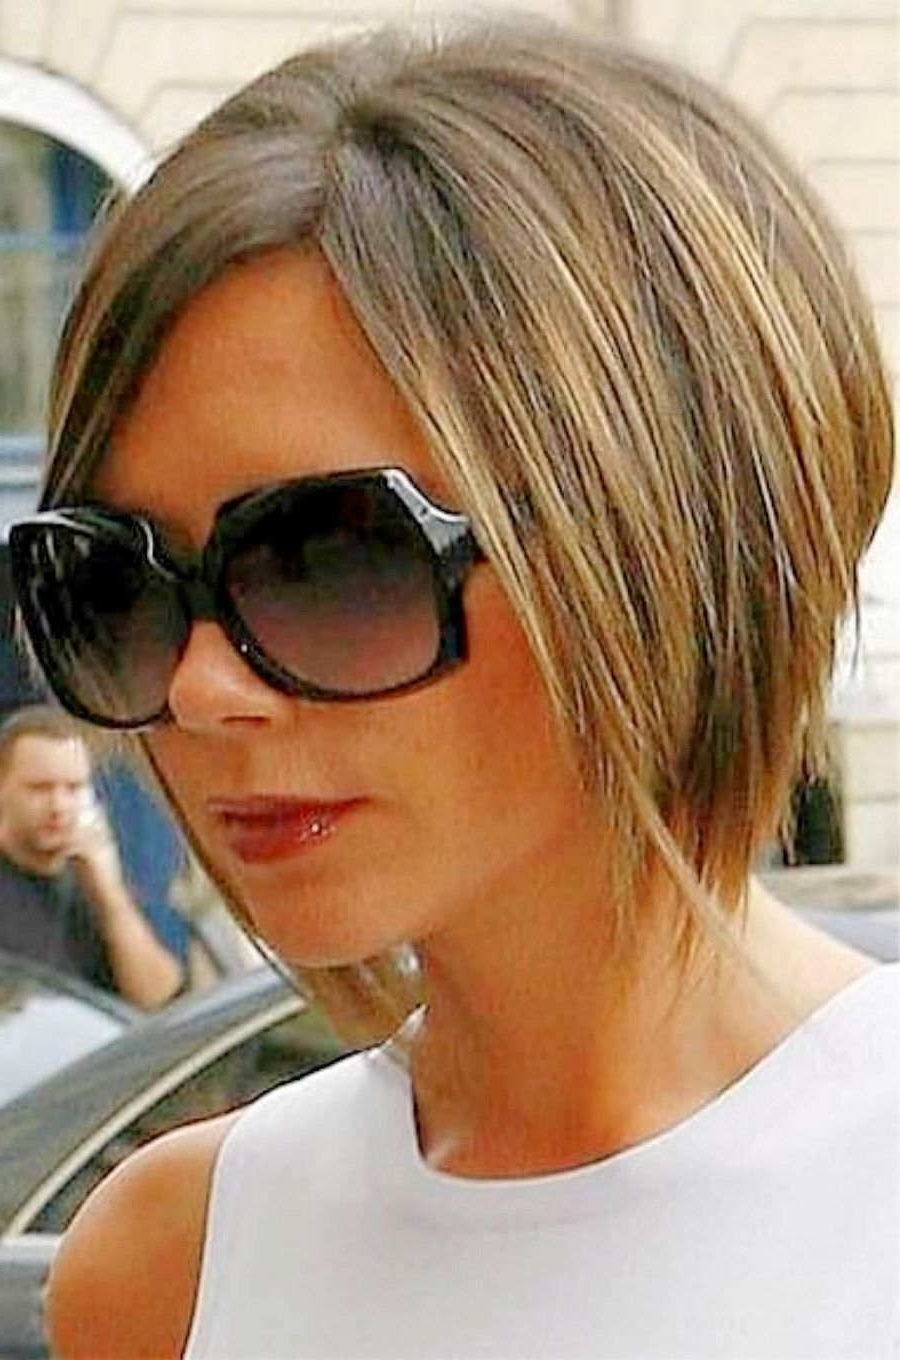 Victoria Beckham Hairstyles Side View | Beckham Bob Haircut Victoria Pertaining To Posh Spice Short Hairstyles (View 21 of 25)